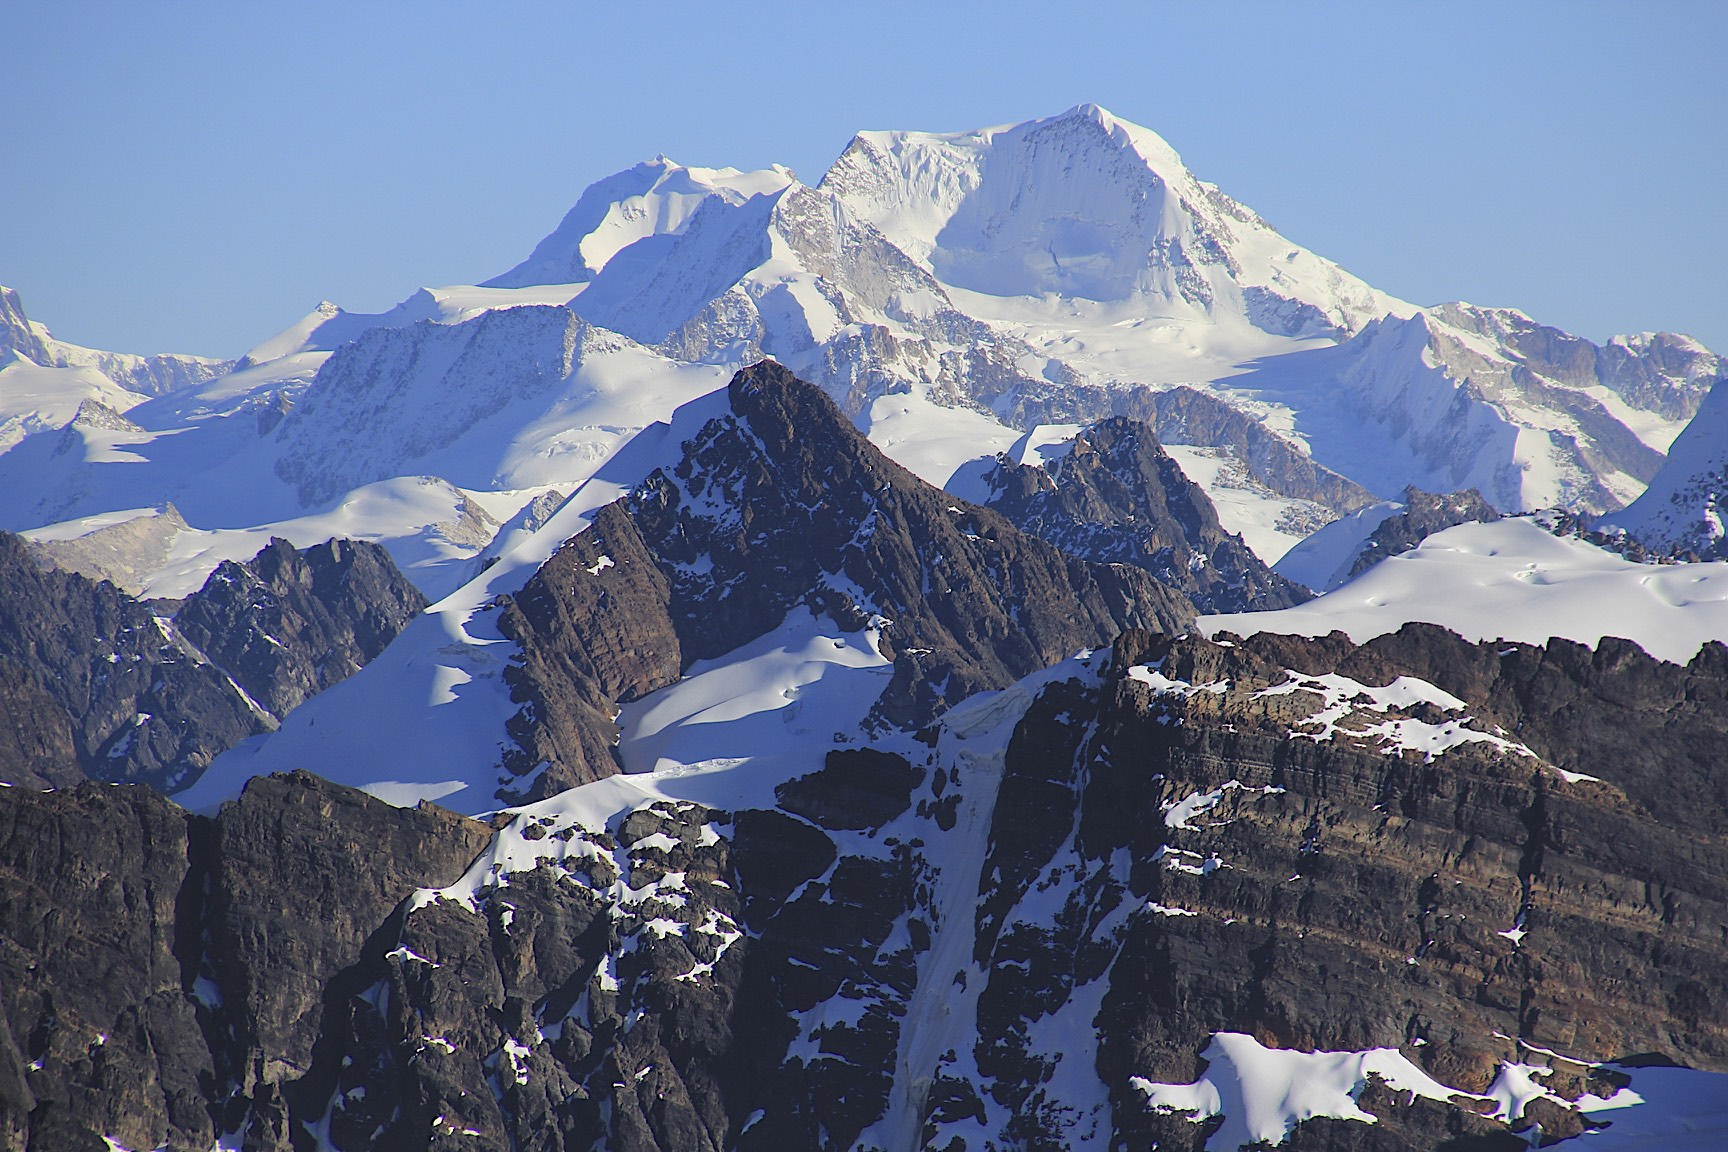 The large bulky mountain is Chachacomani 6,074m fromt the summit of Pequeno Alpamayo.